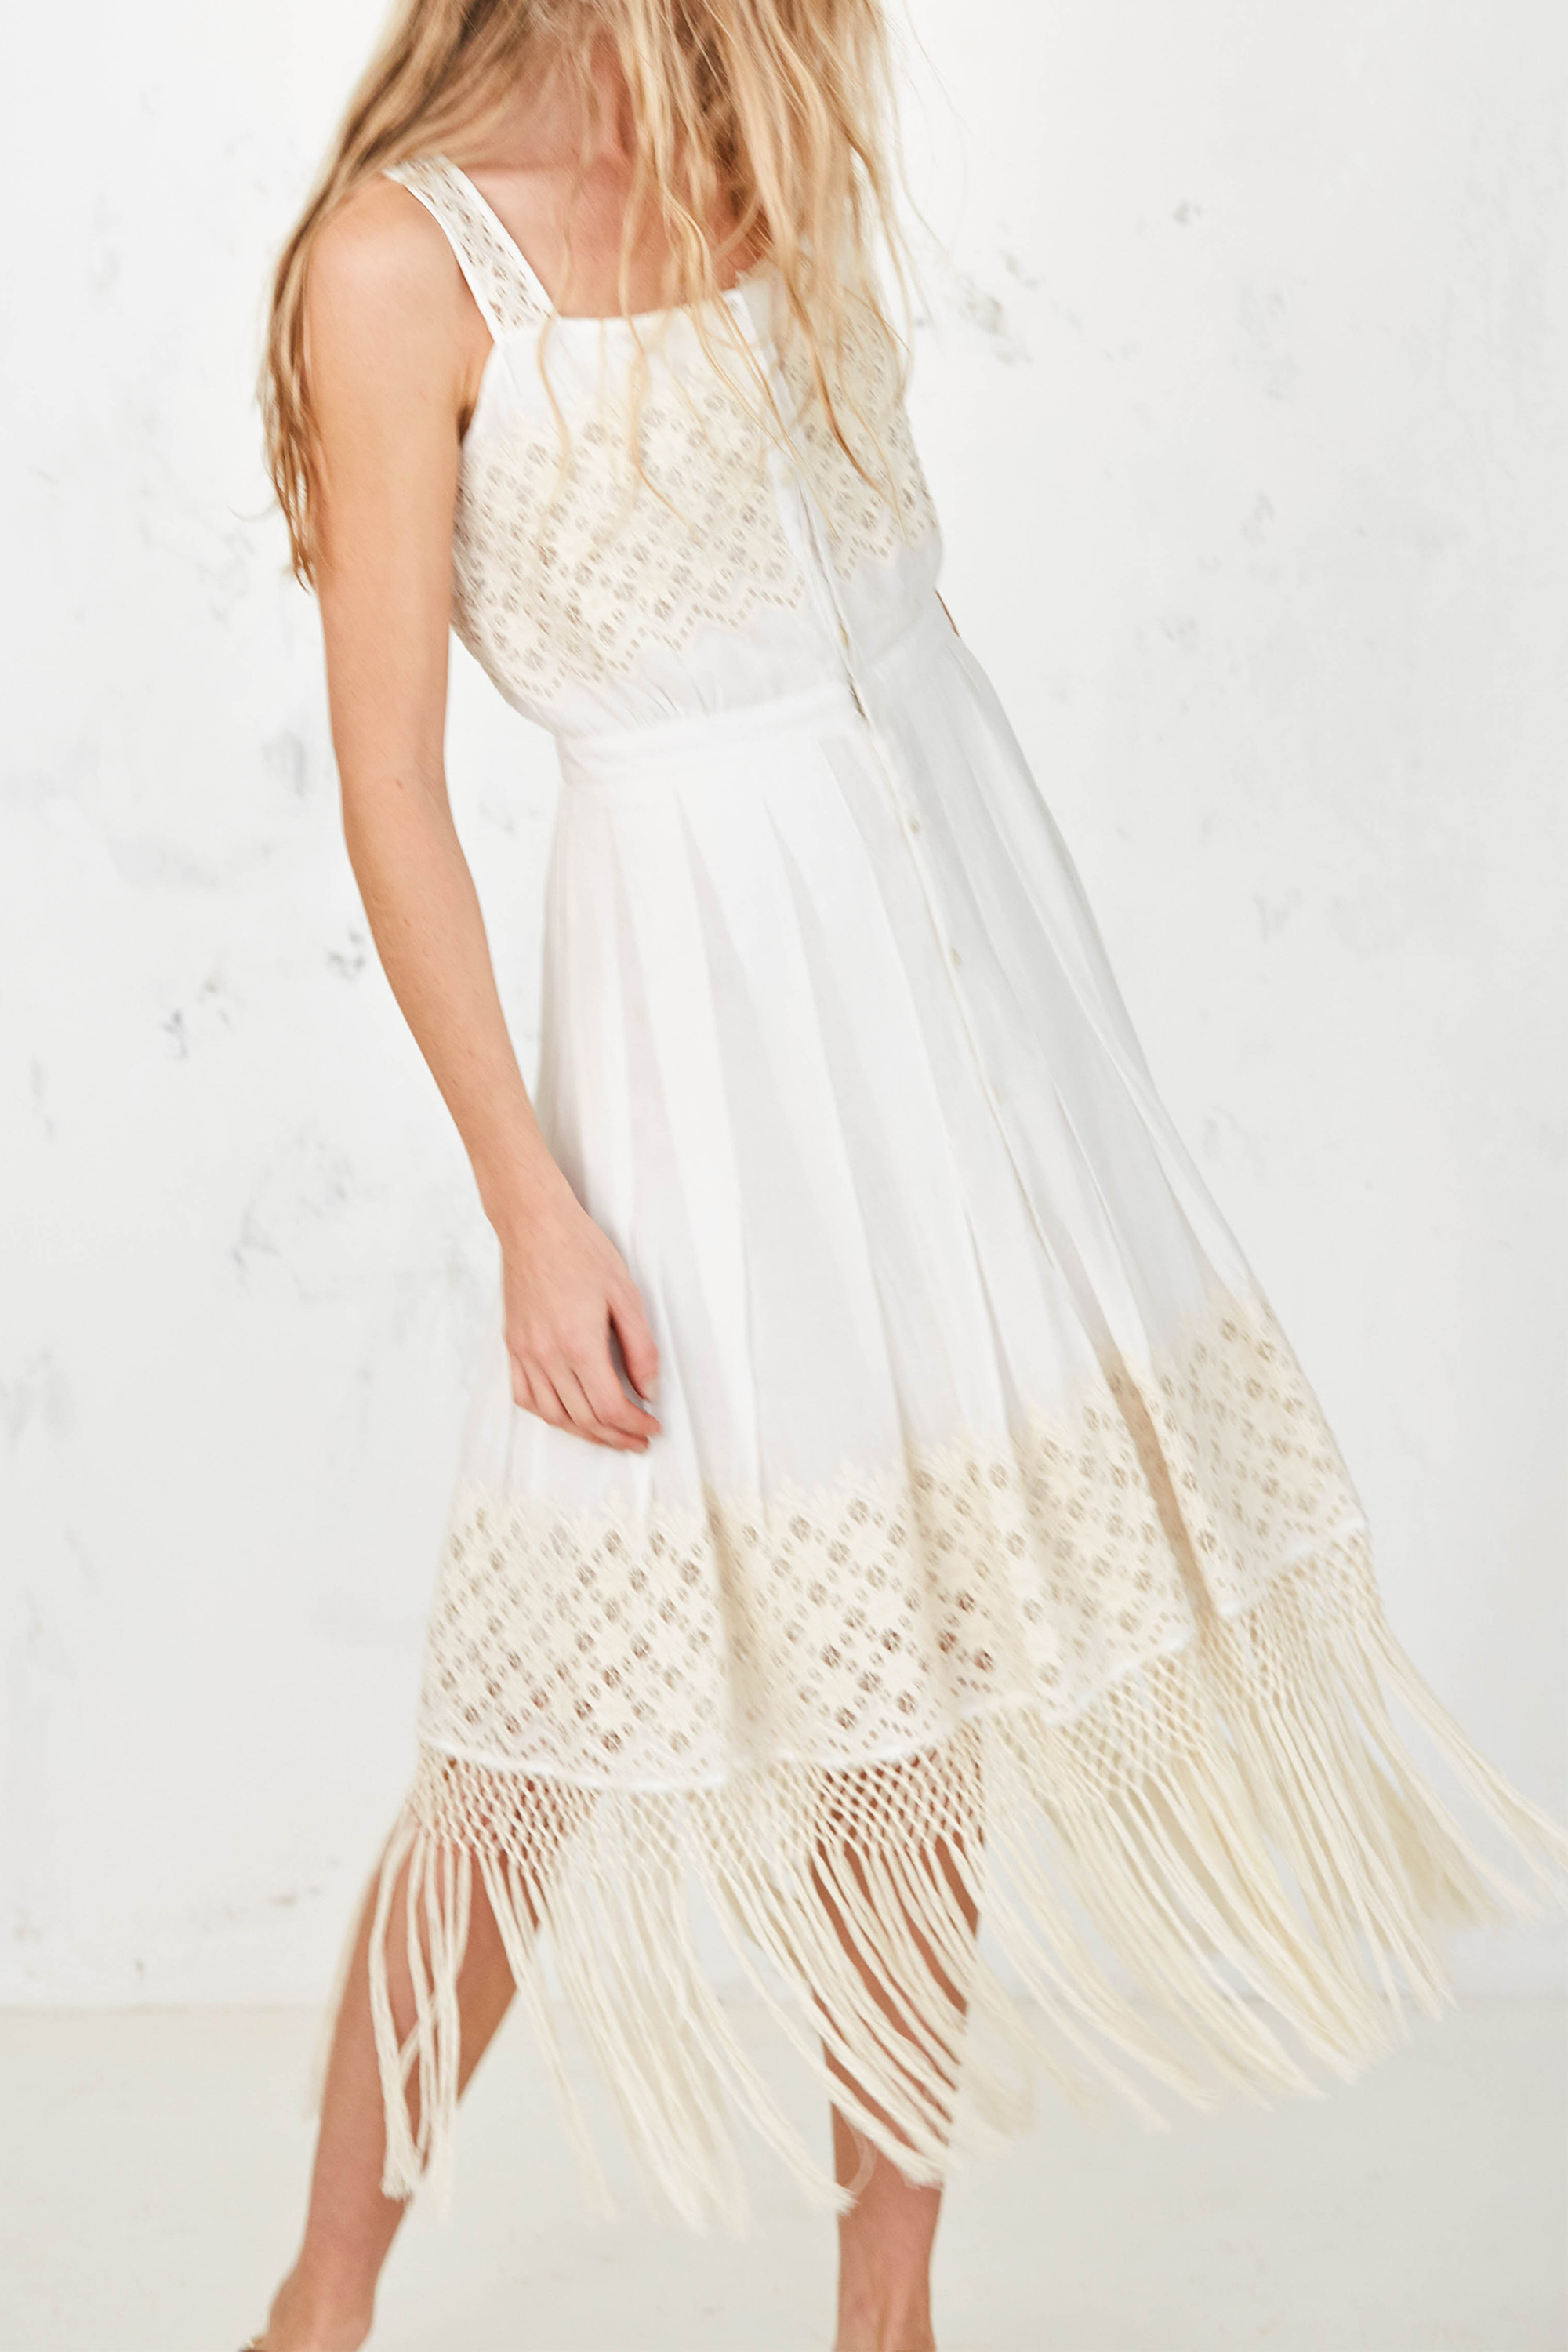 Eve dress with fringe_.jpg